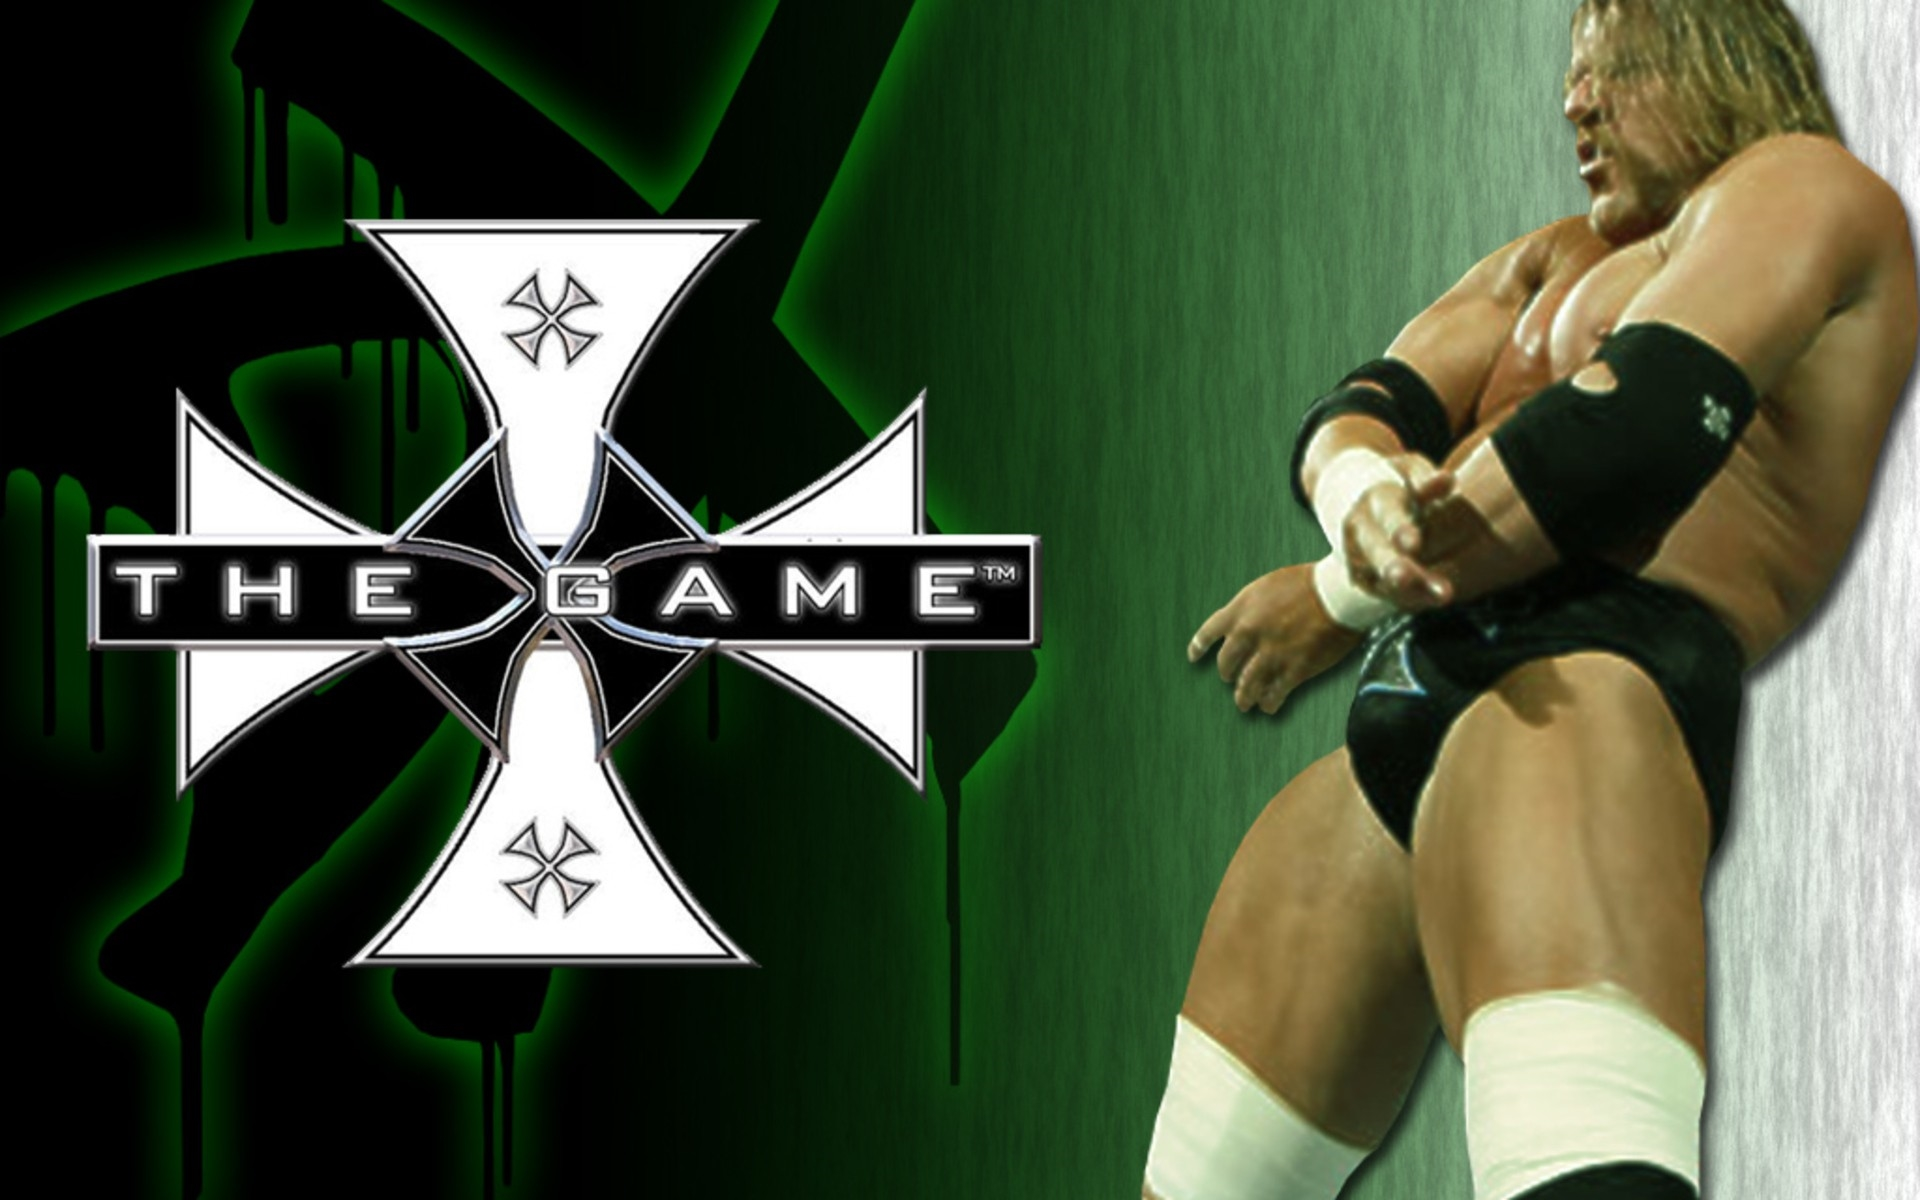 hhh the game wrestling wallpaper